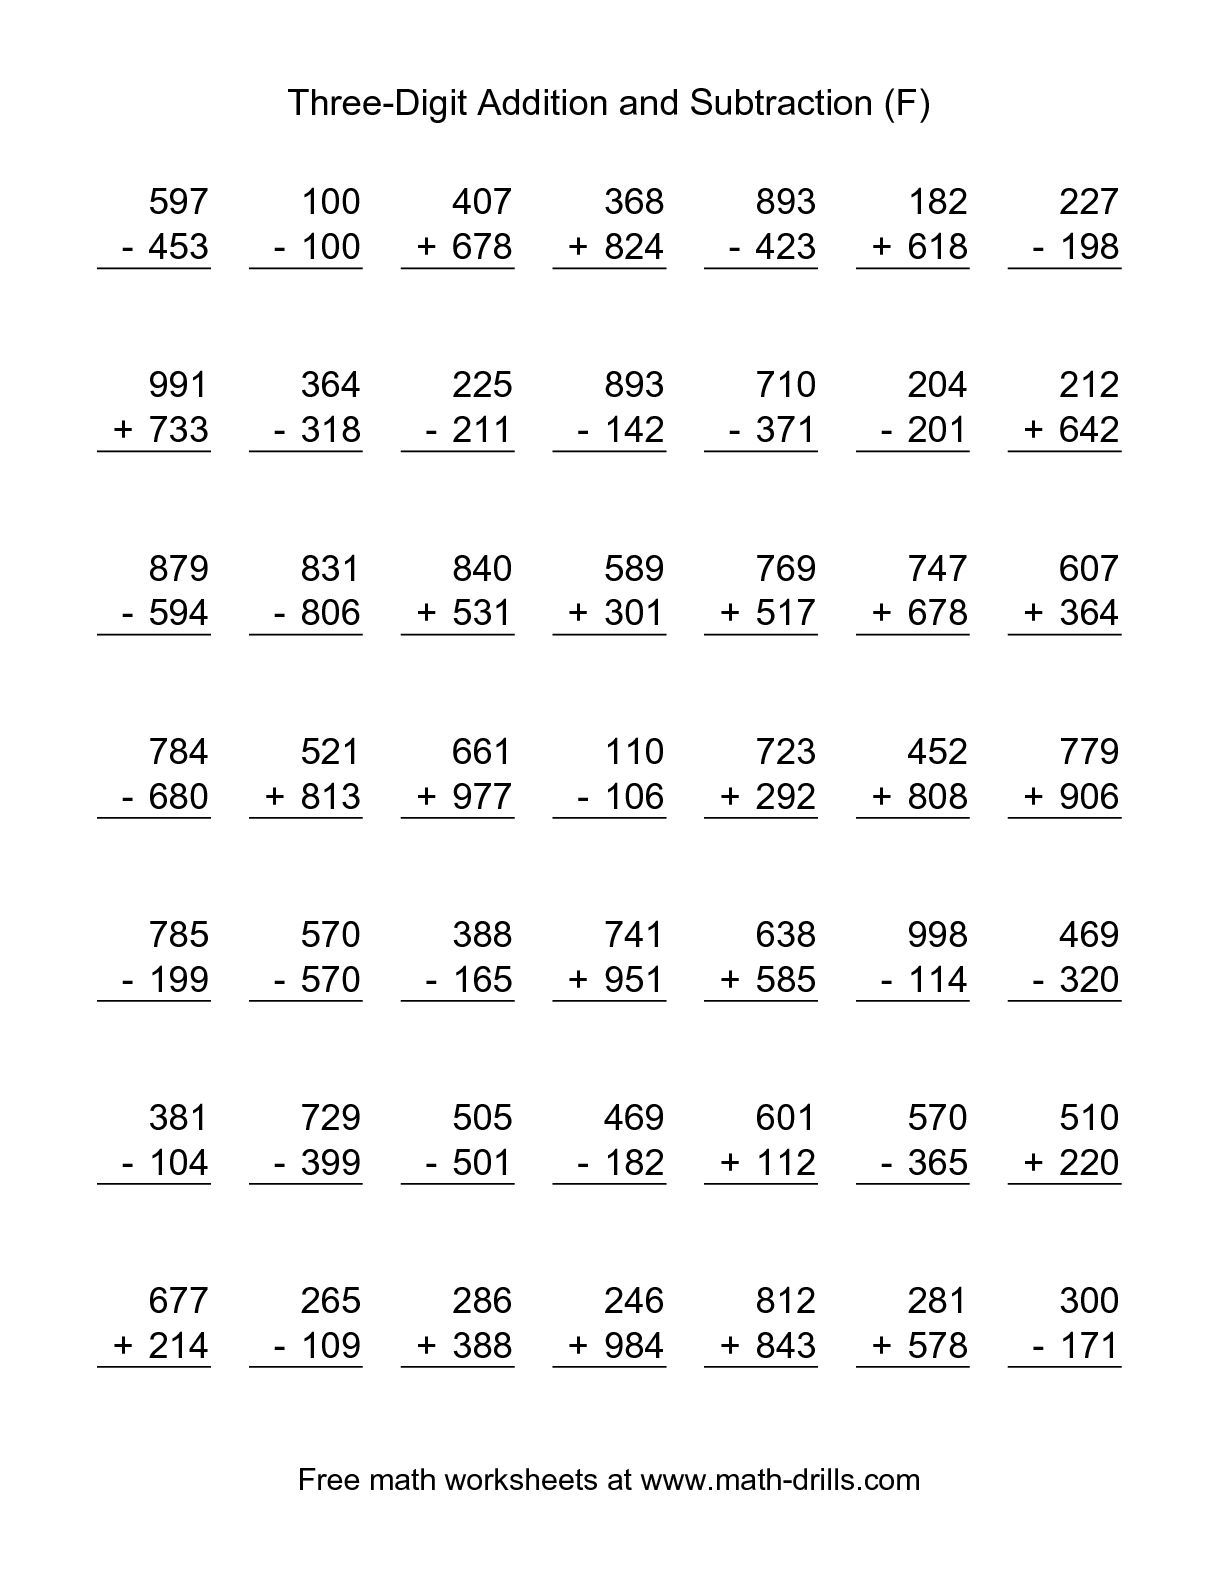 The Adding And Subtracting Three-Digit Numbers (F) Math Worksheet | Printable Addition And Subtraction Worksheets For Grade 3